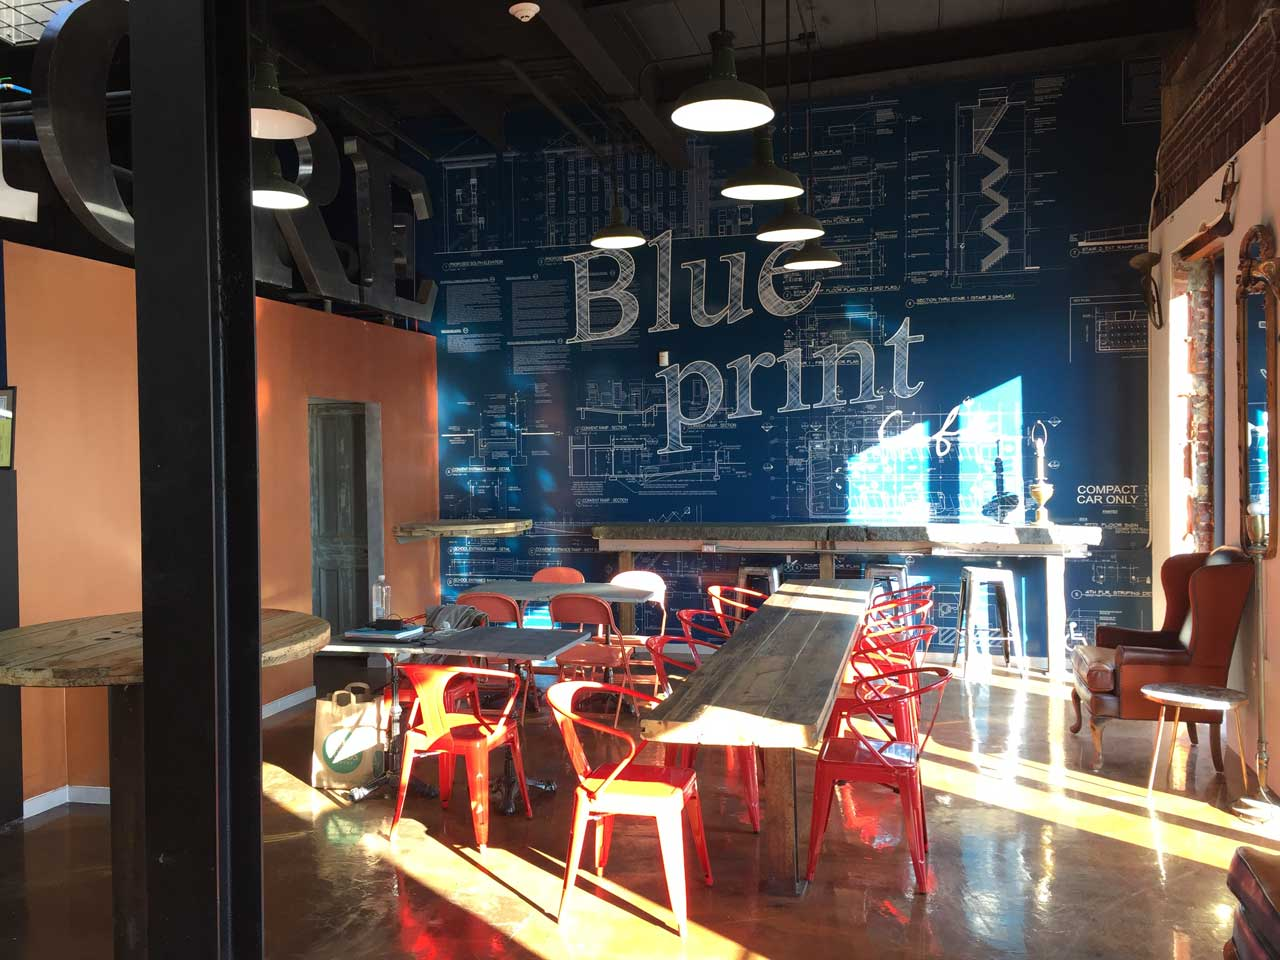 Blueprint caf opening in newark this week jersey digs blueprint cafe 369 raymond boulevard newark interior malvernweather Choice Image